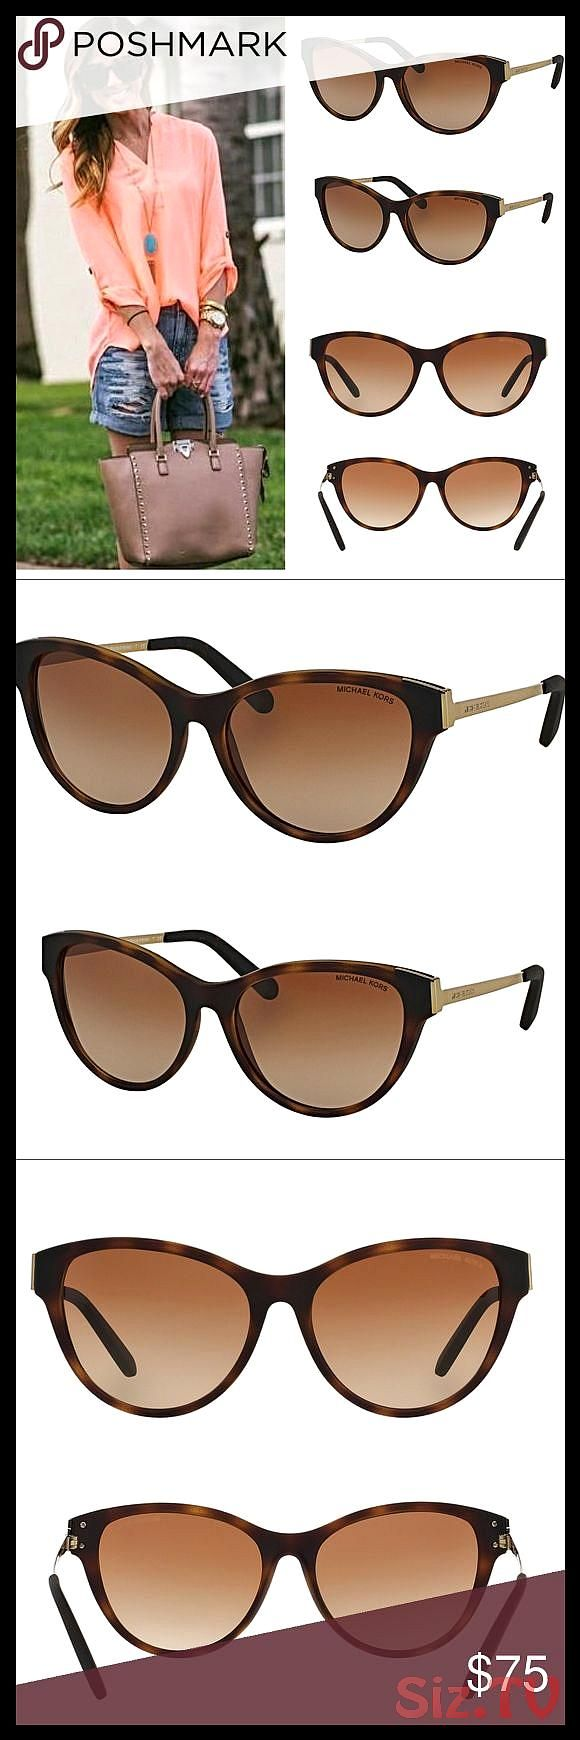 MICHAEL KORS CAT EYE PUNTE ARENA SUNGLASSES BROWN New in case with cloth 038 papers Michael Kors MK6014 Punte Arenas Color 302113 DK Tortoise Soft TouMICHAEL KORS CAT EYE...